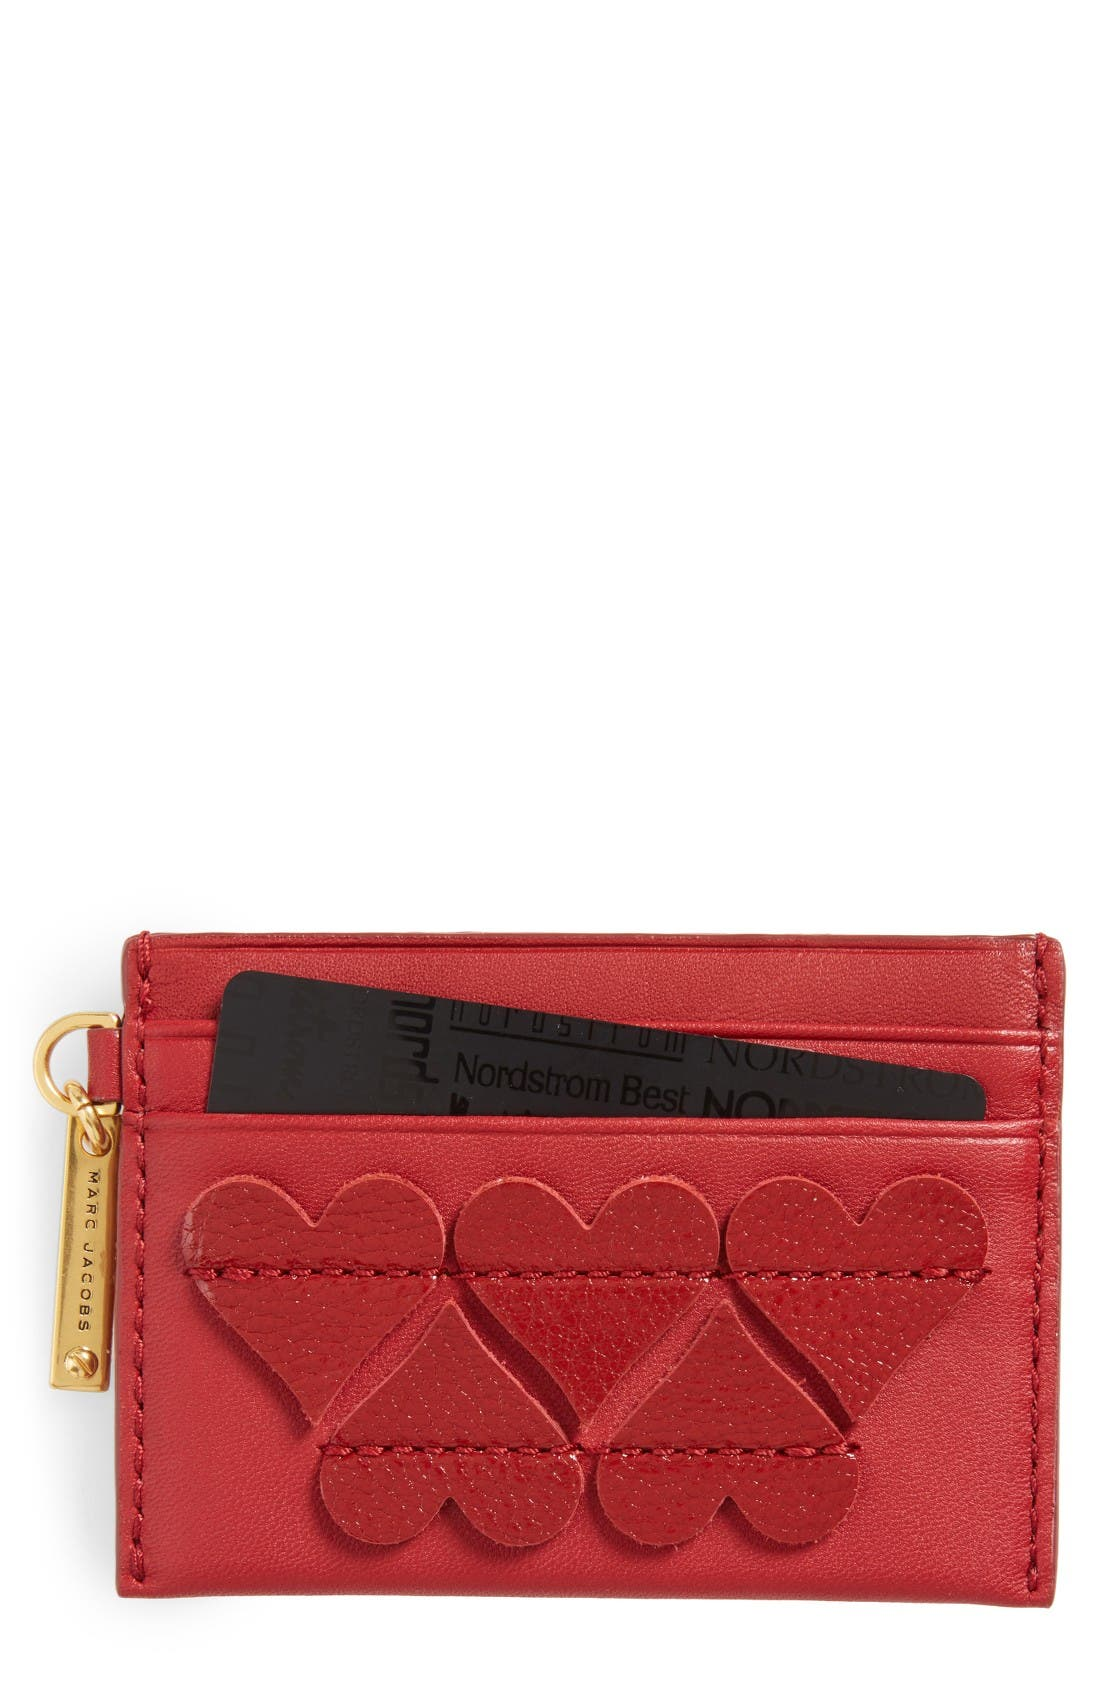 Main Image - MARC JACOBS Heart Leather Card Case